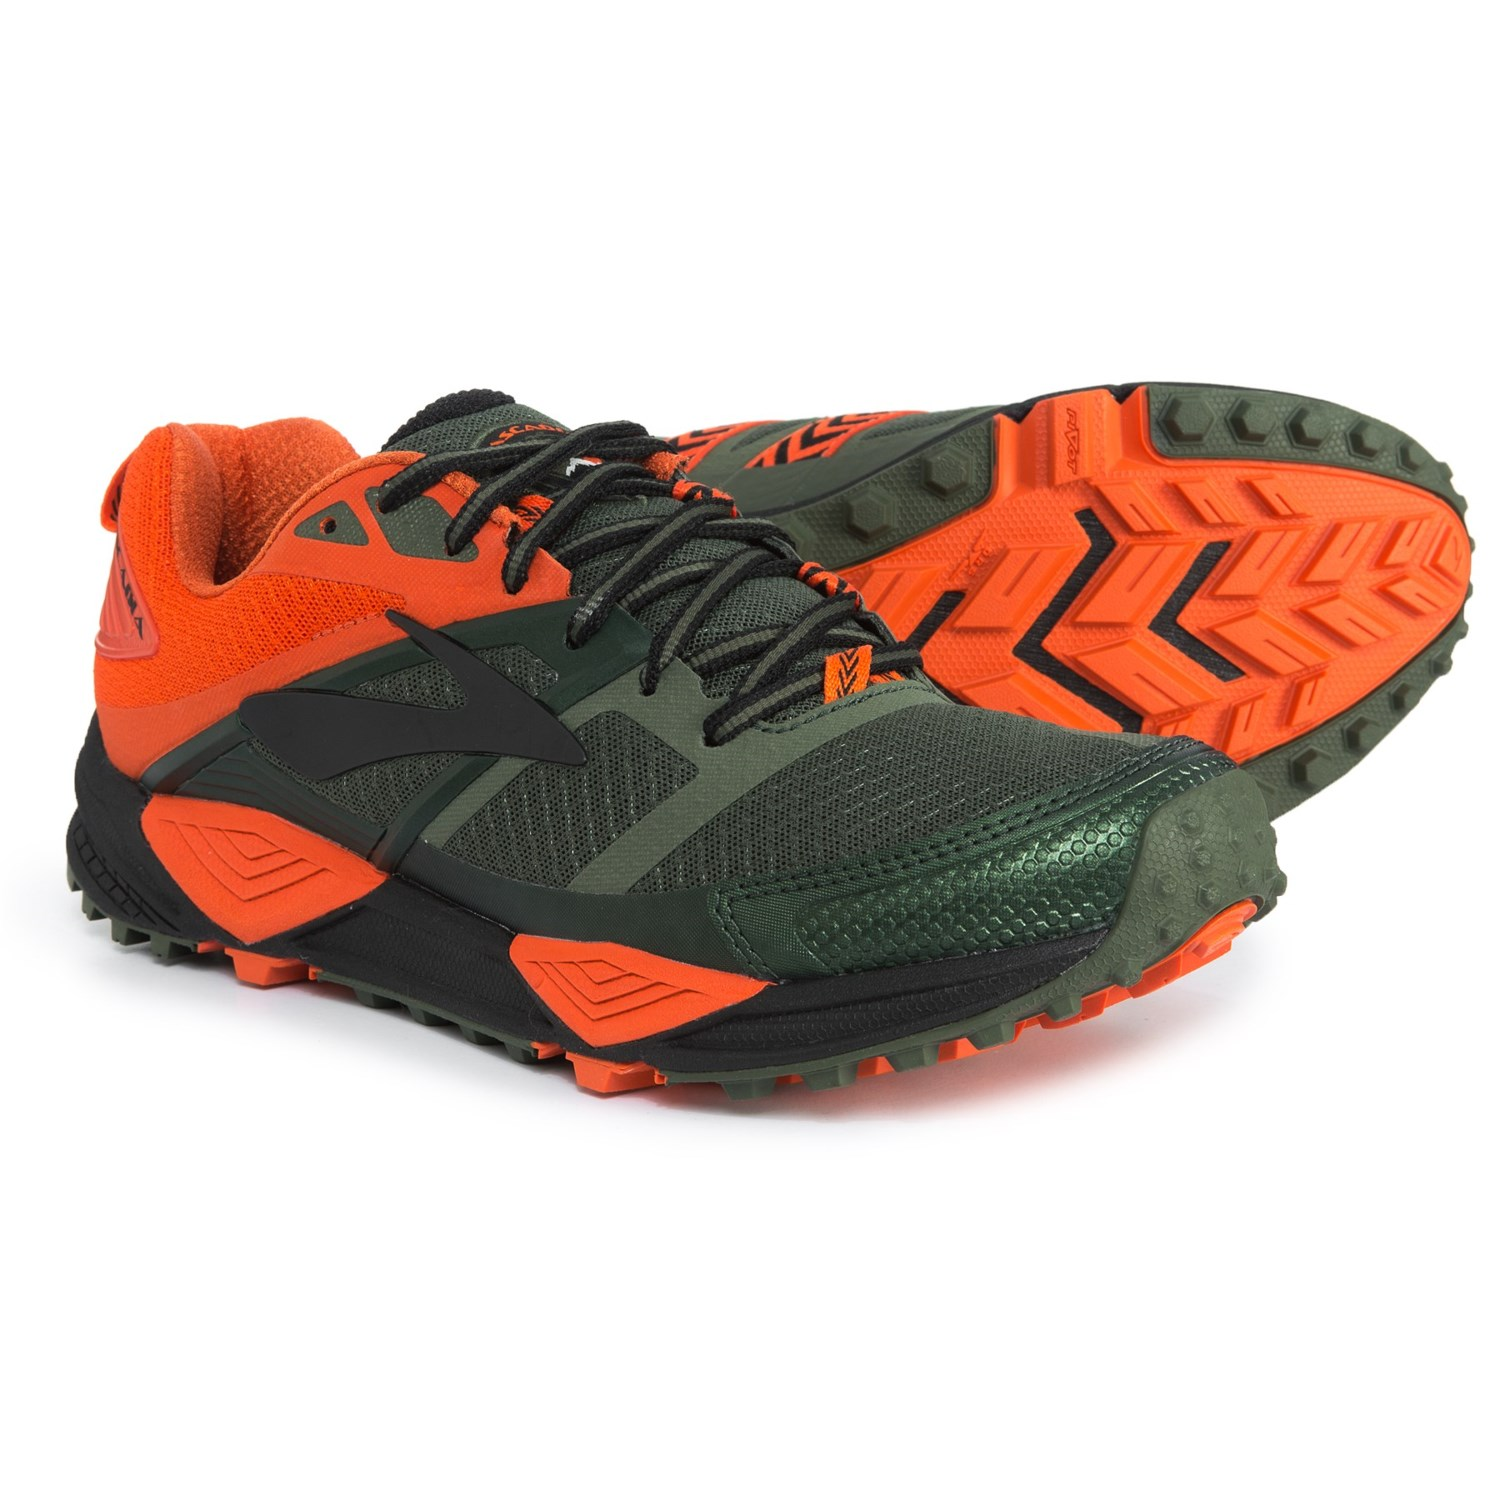 Brooks Cascadia 12 Trail Running Shoes (For Men) in Green Orange Black 4c5bc5f4a44